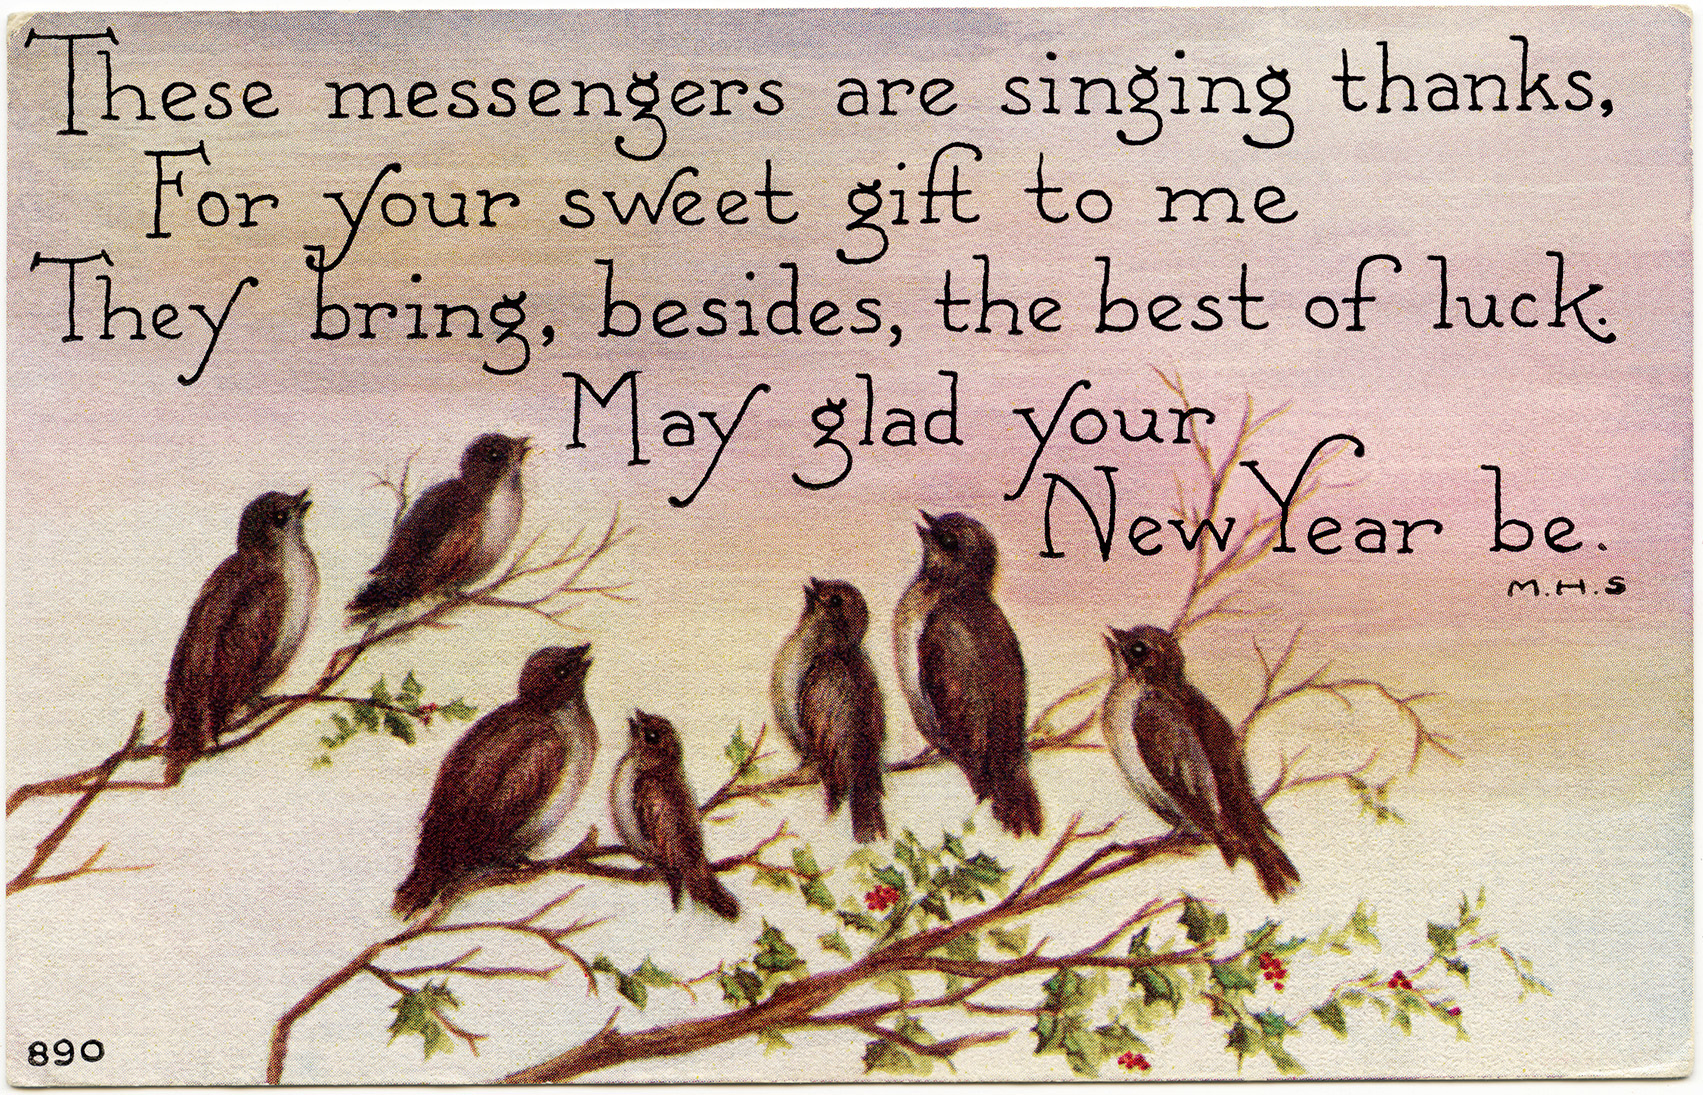 brown birds illustration, vintage new year postcard, singing birds clip art, holly berries bird illustration, vintage bird graphics